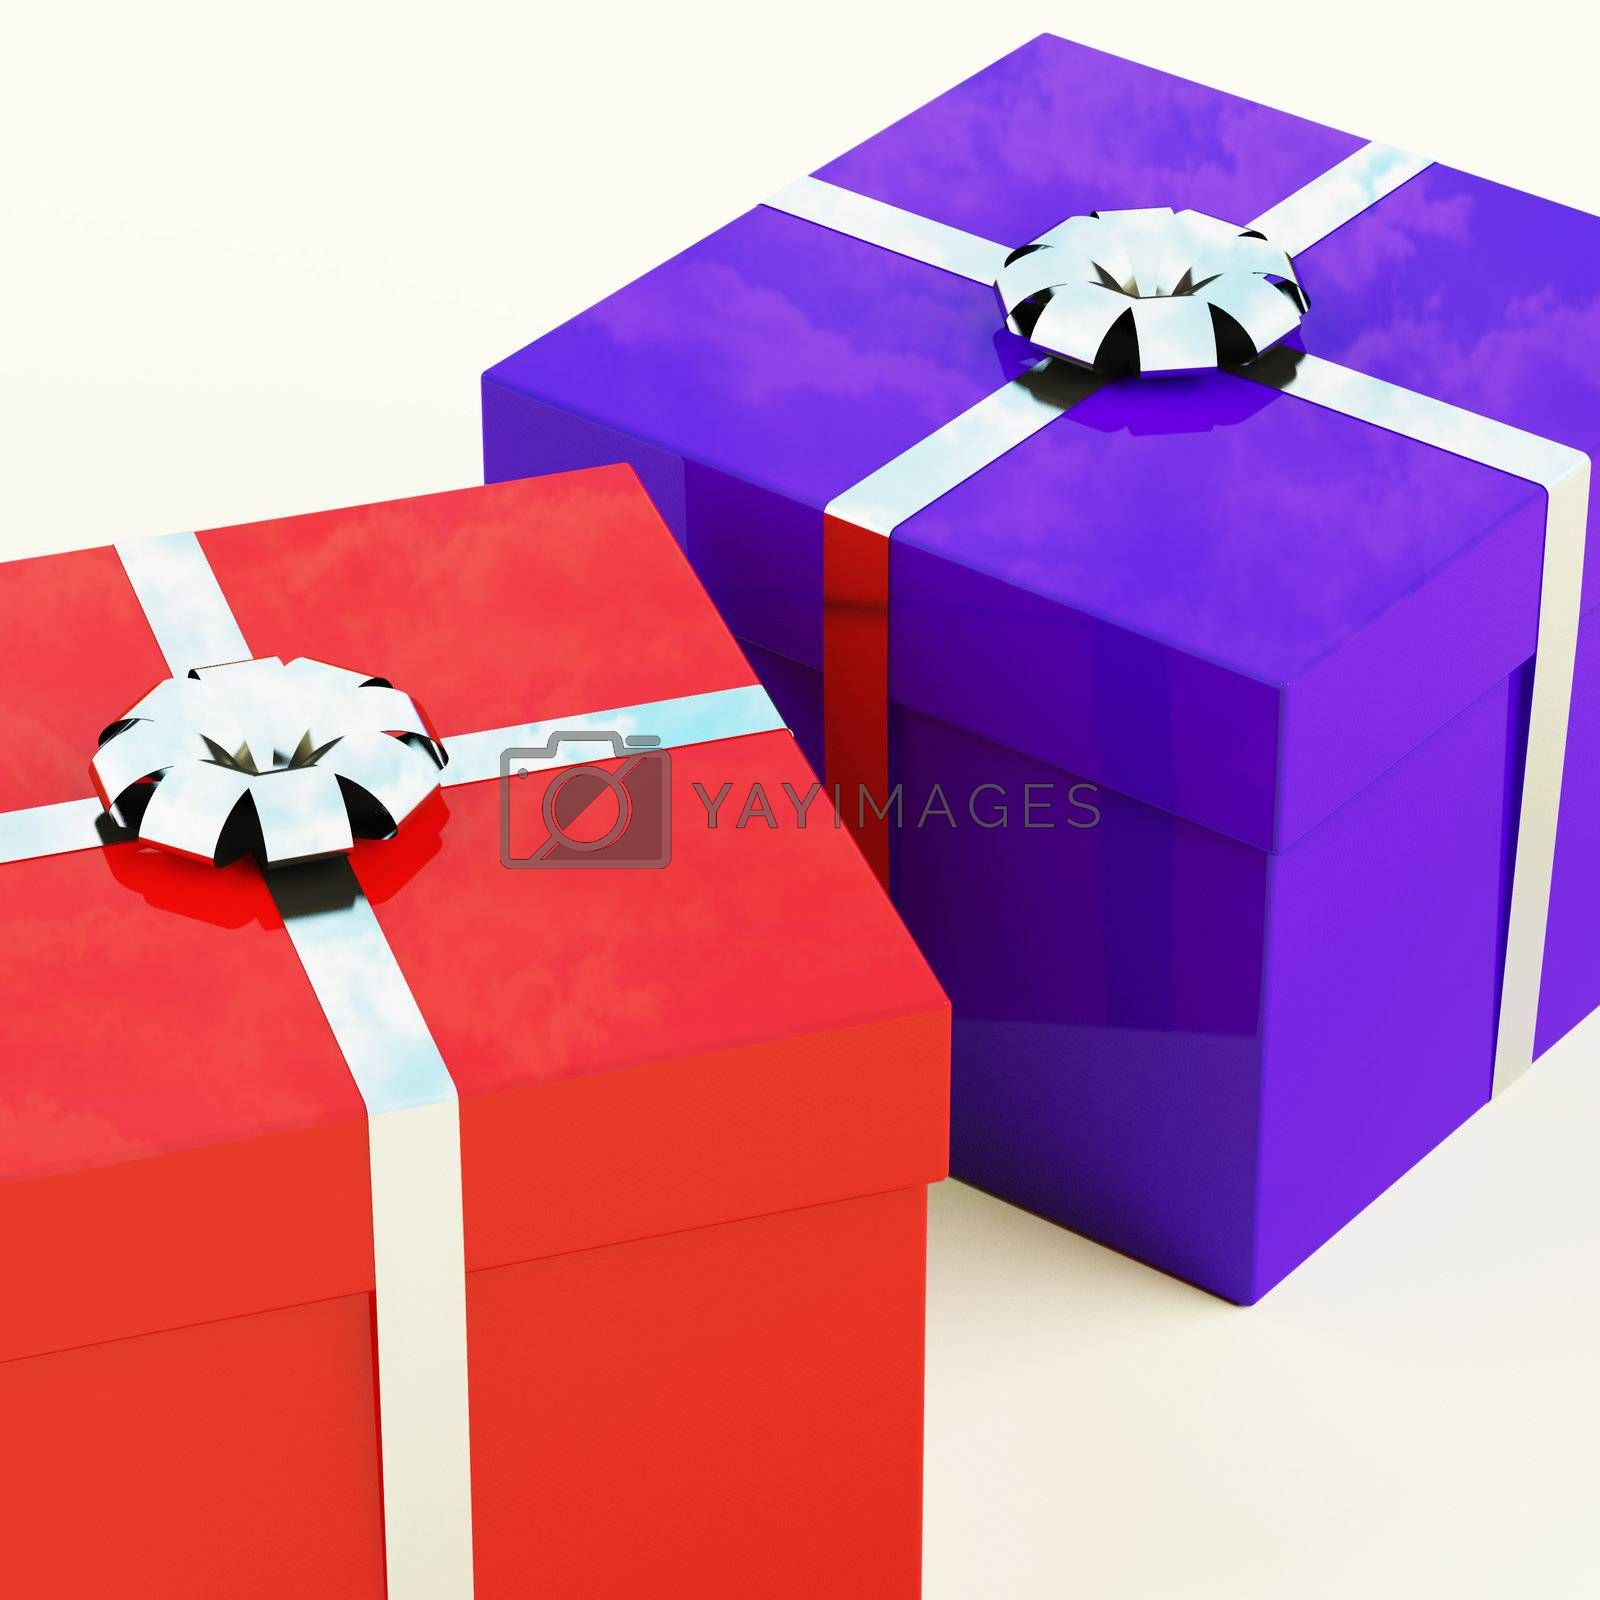 Red And Blue Gift Boxes With Silver Ribbons As Present For Him And Her